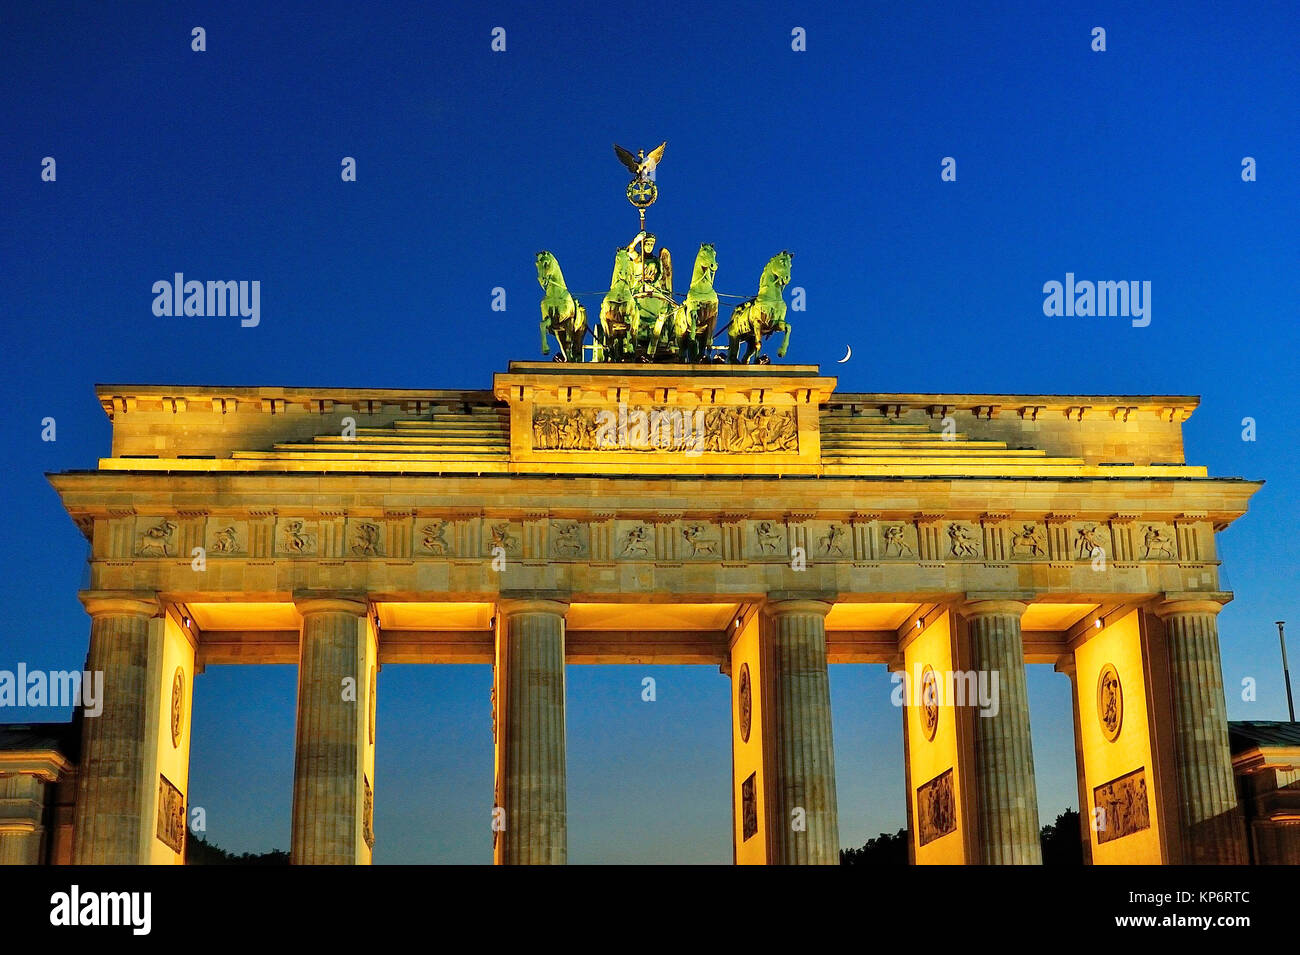 The neoclassical Brandenburger Tor -Brandenburg Gate-, XVIIIth-century, by Carl Gotthard Langhans. Berlin, Germany - Stock Image